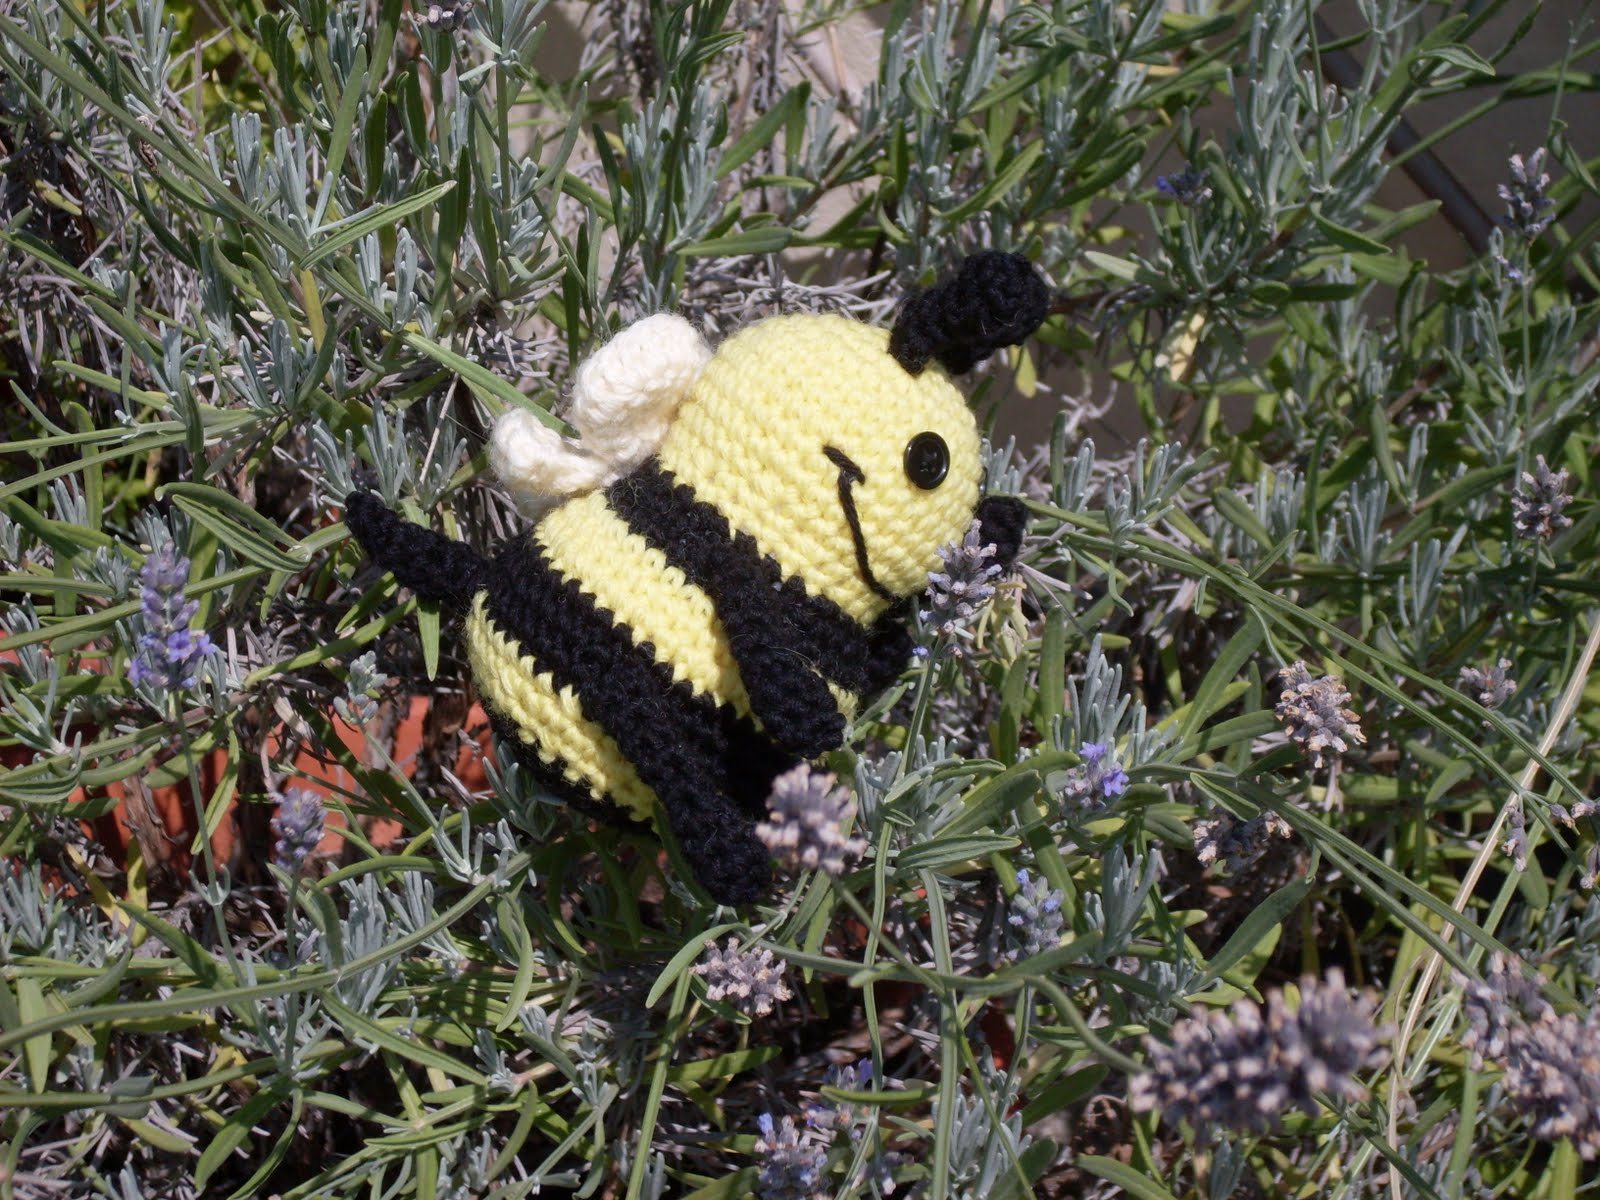 Free knitting patterns - Bzzzzzzz A Knit Bumble Bee! from Knitting Bee